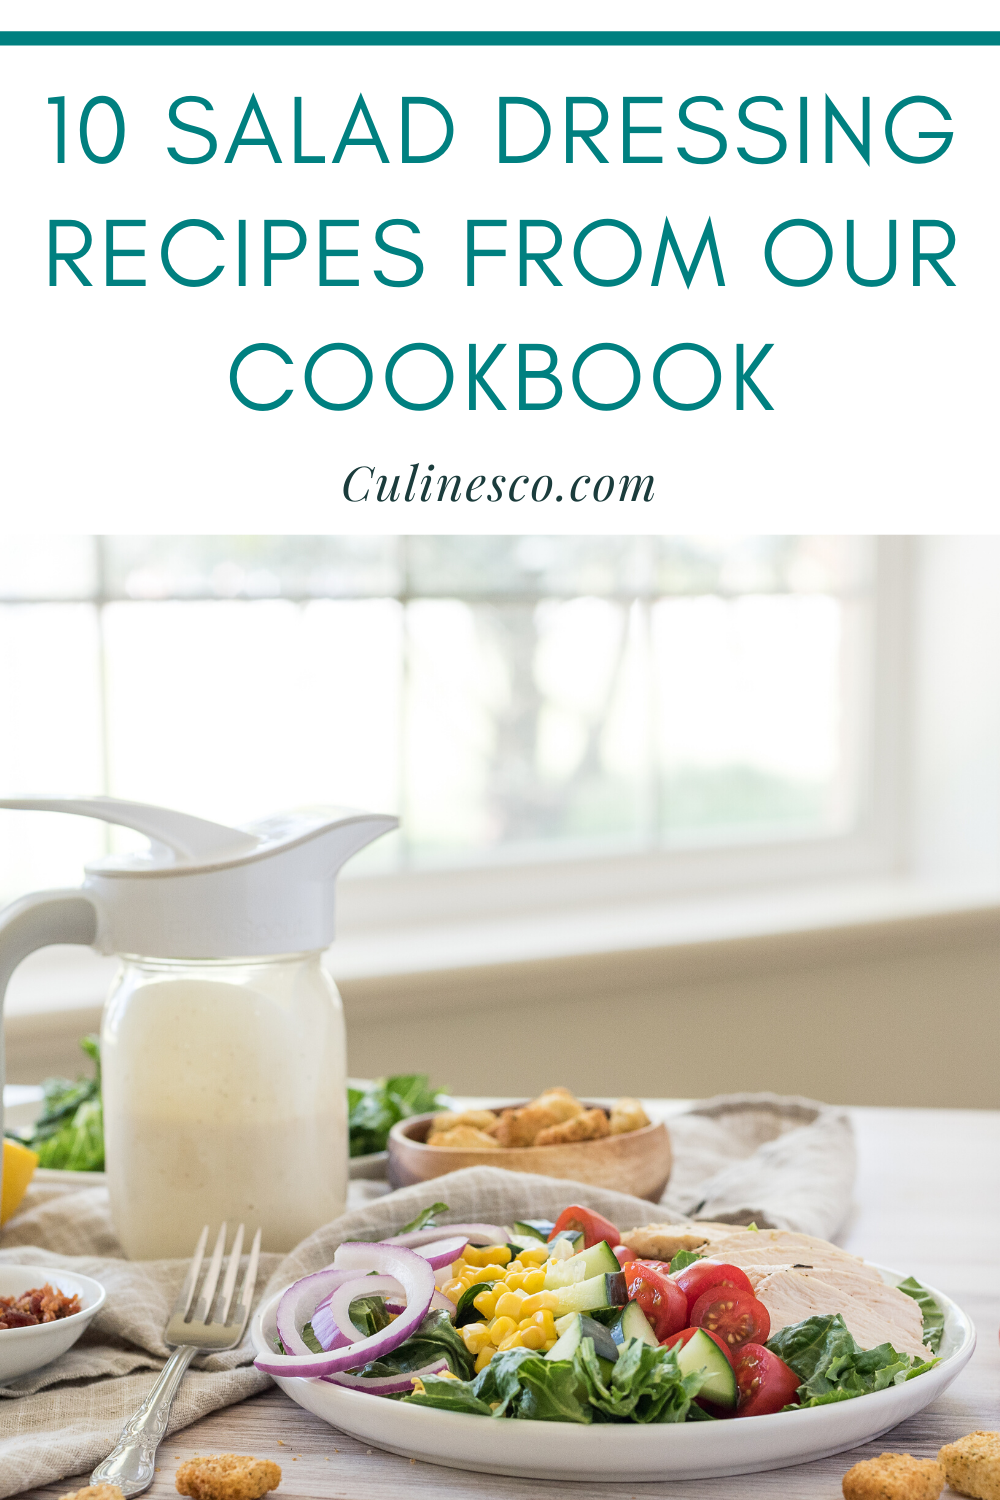 Get a sneak peak of the salad dressing recipes in our cookbook made just for the Ergo Spout®. These 10 recipes will have you begging to eat your greens!